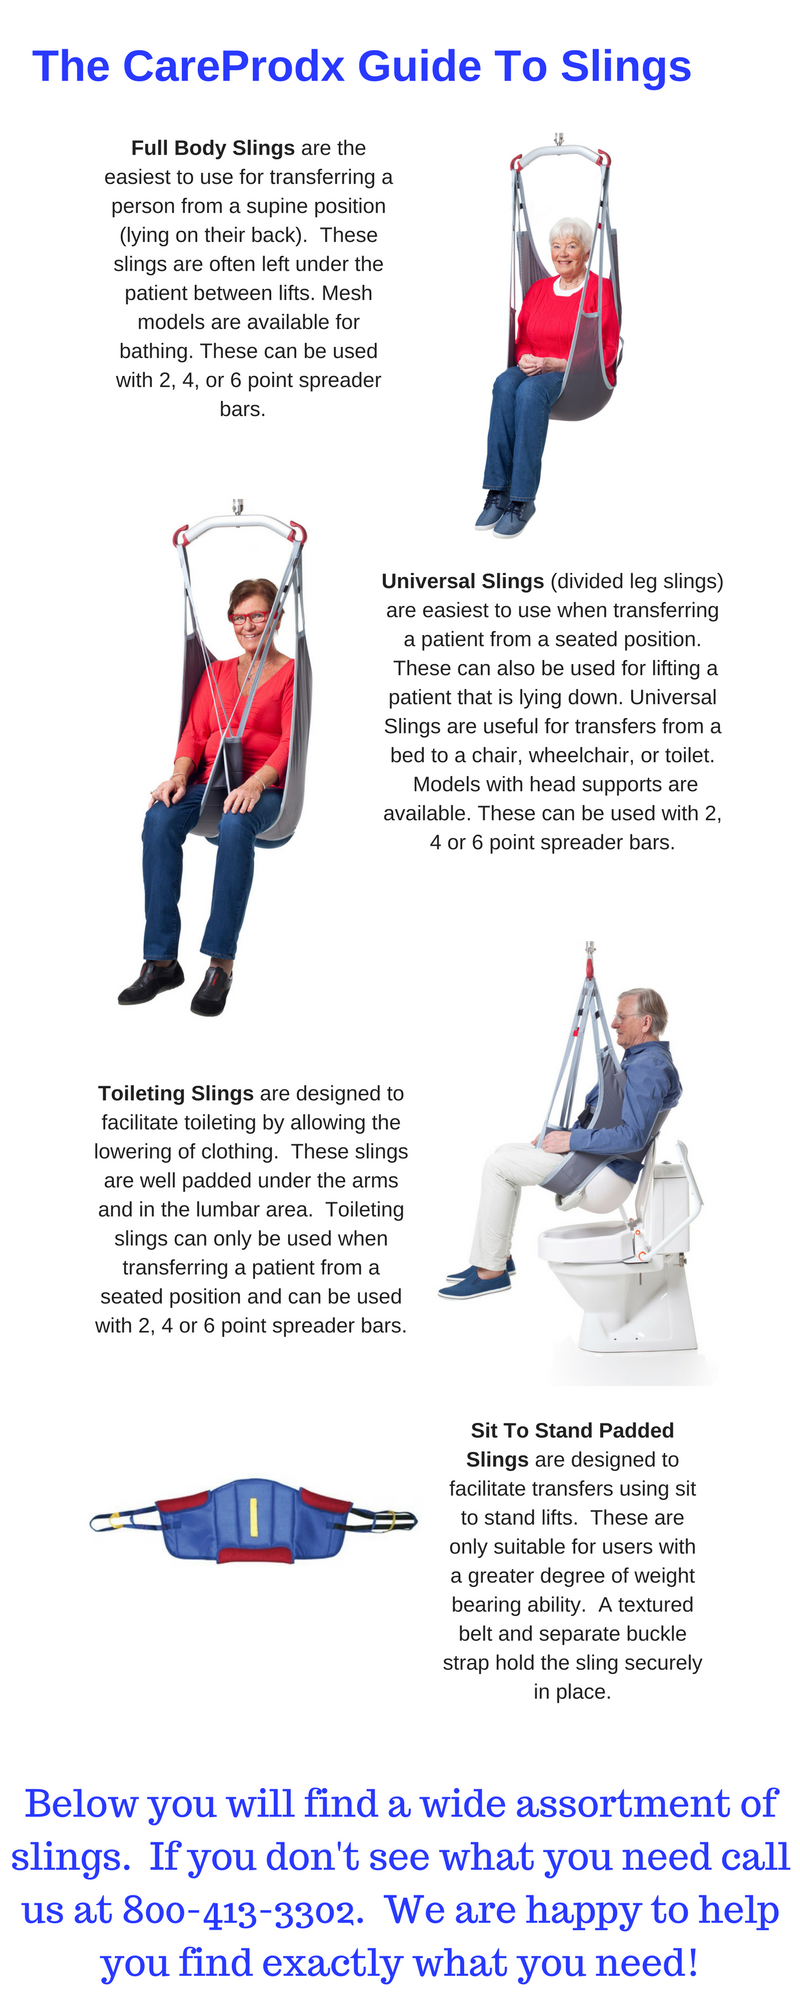 careprodx-guide-to-slings-1-.png